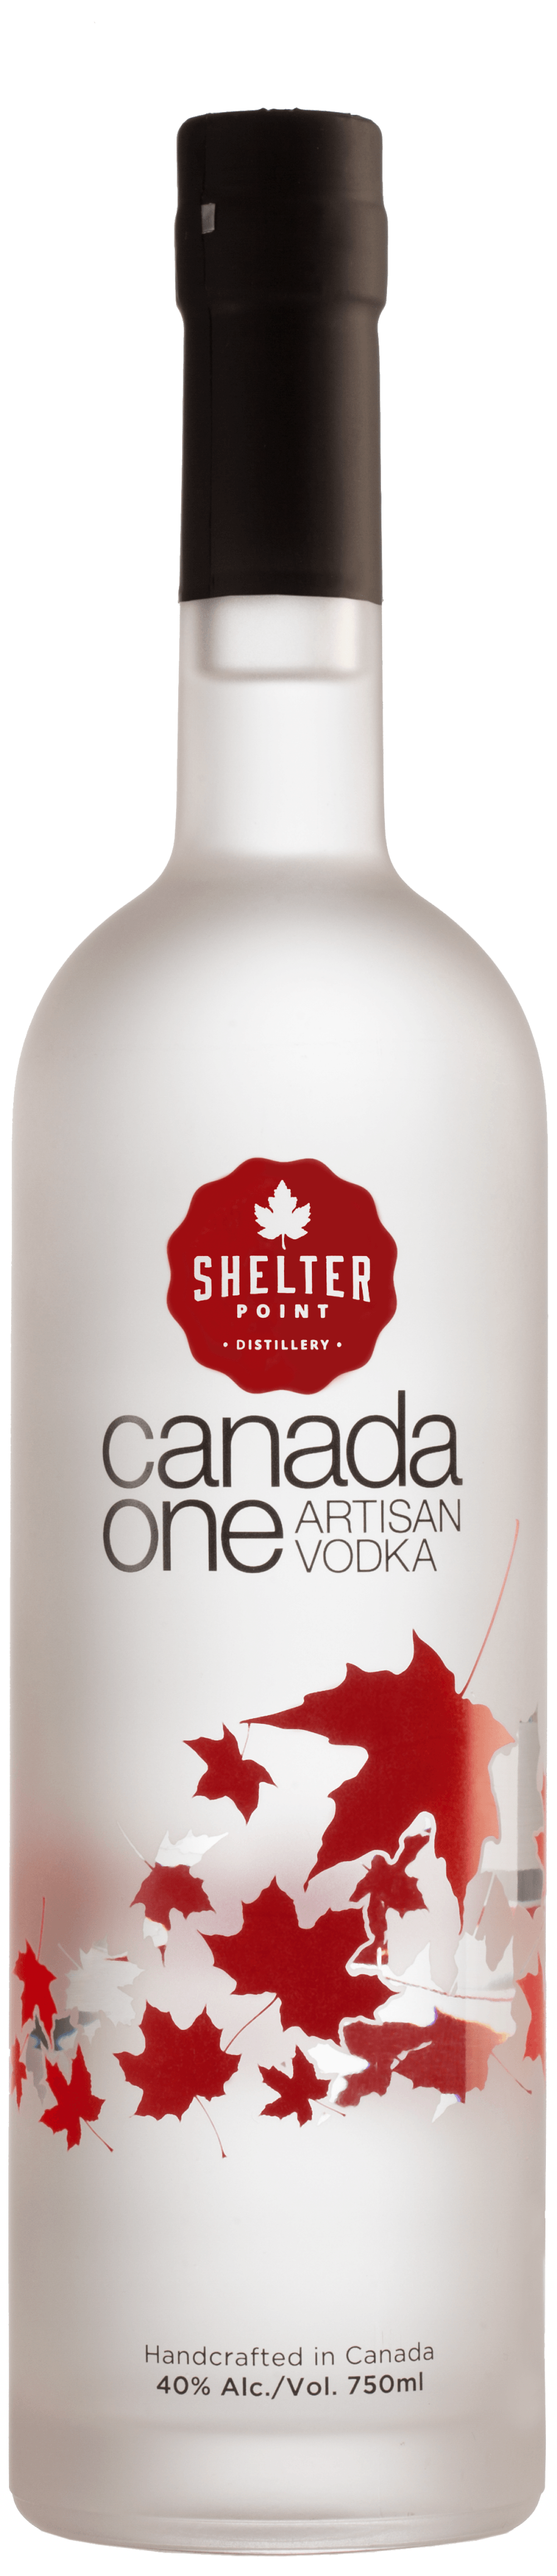 Shelter Point Canada One Artisan vodka